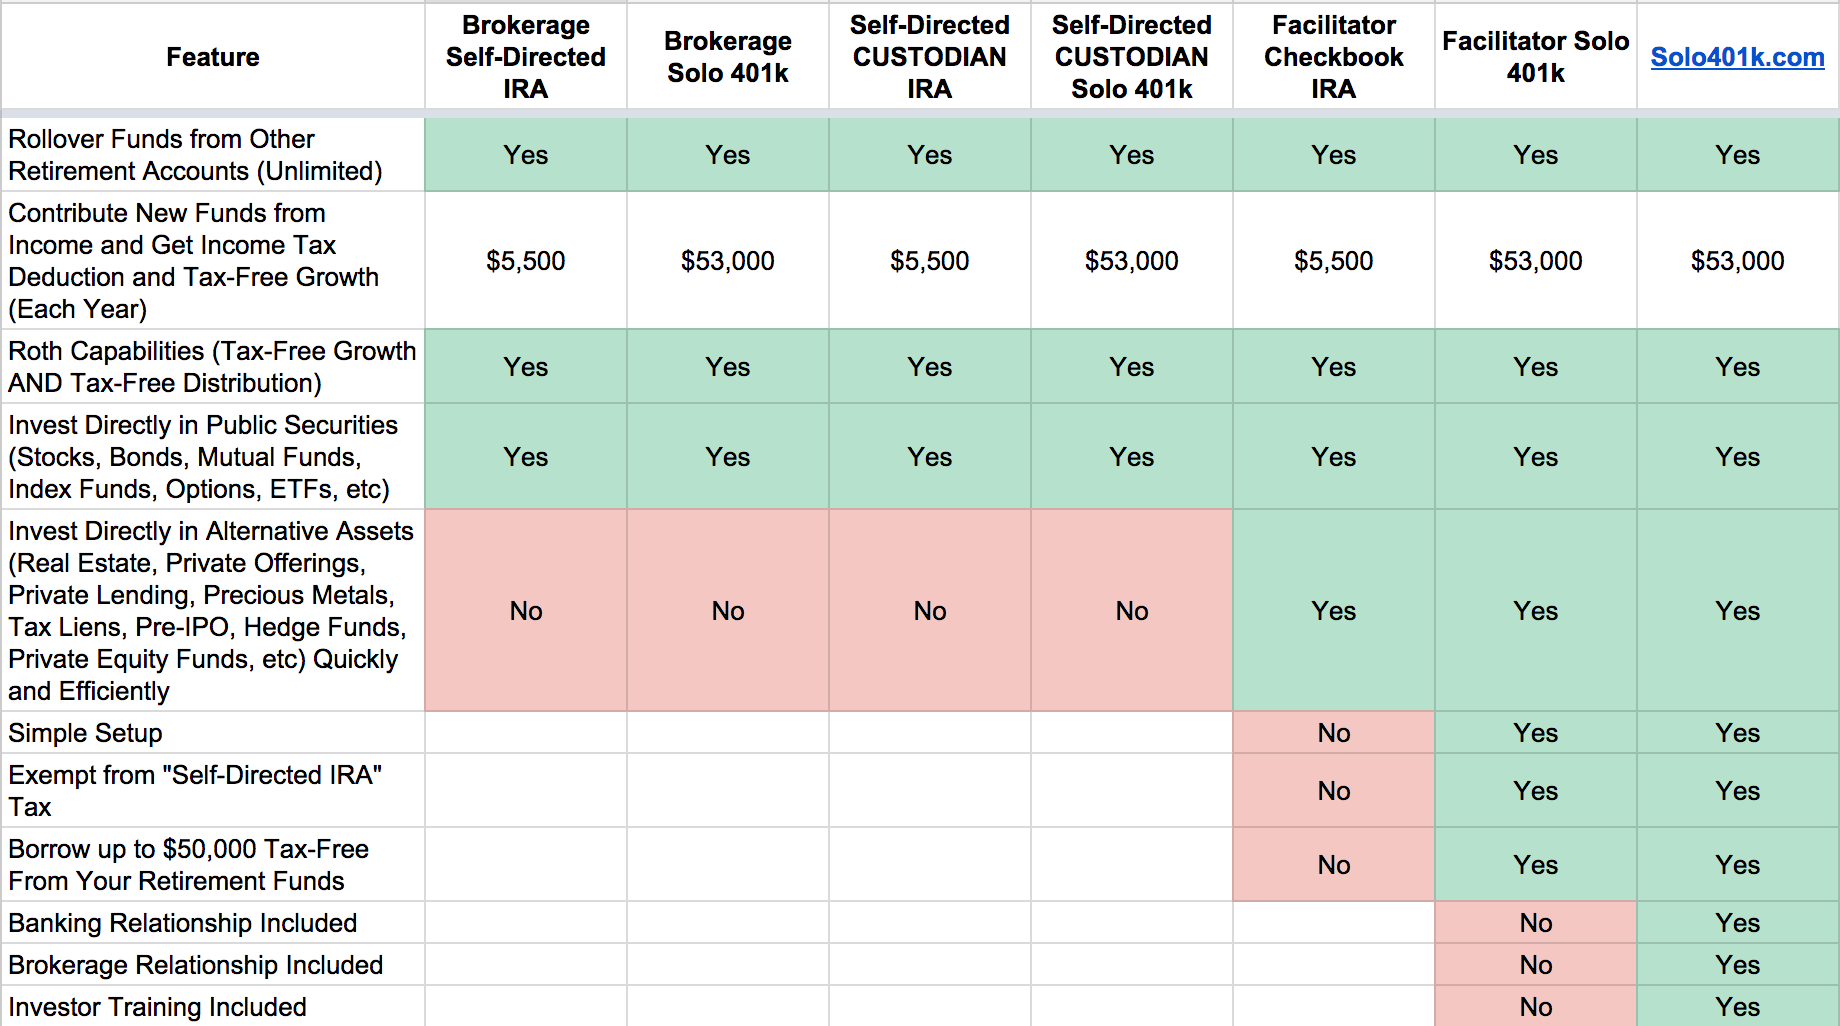 compare self directed account types solo 401k